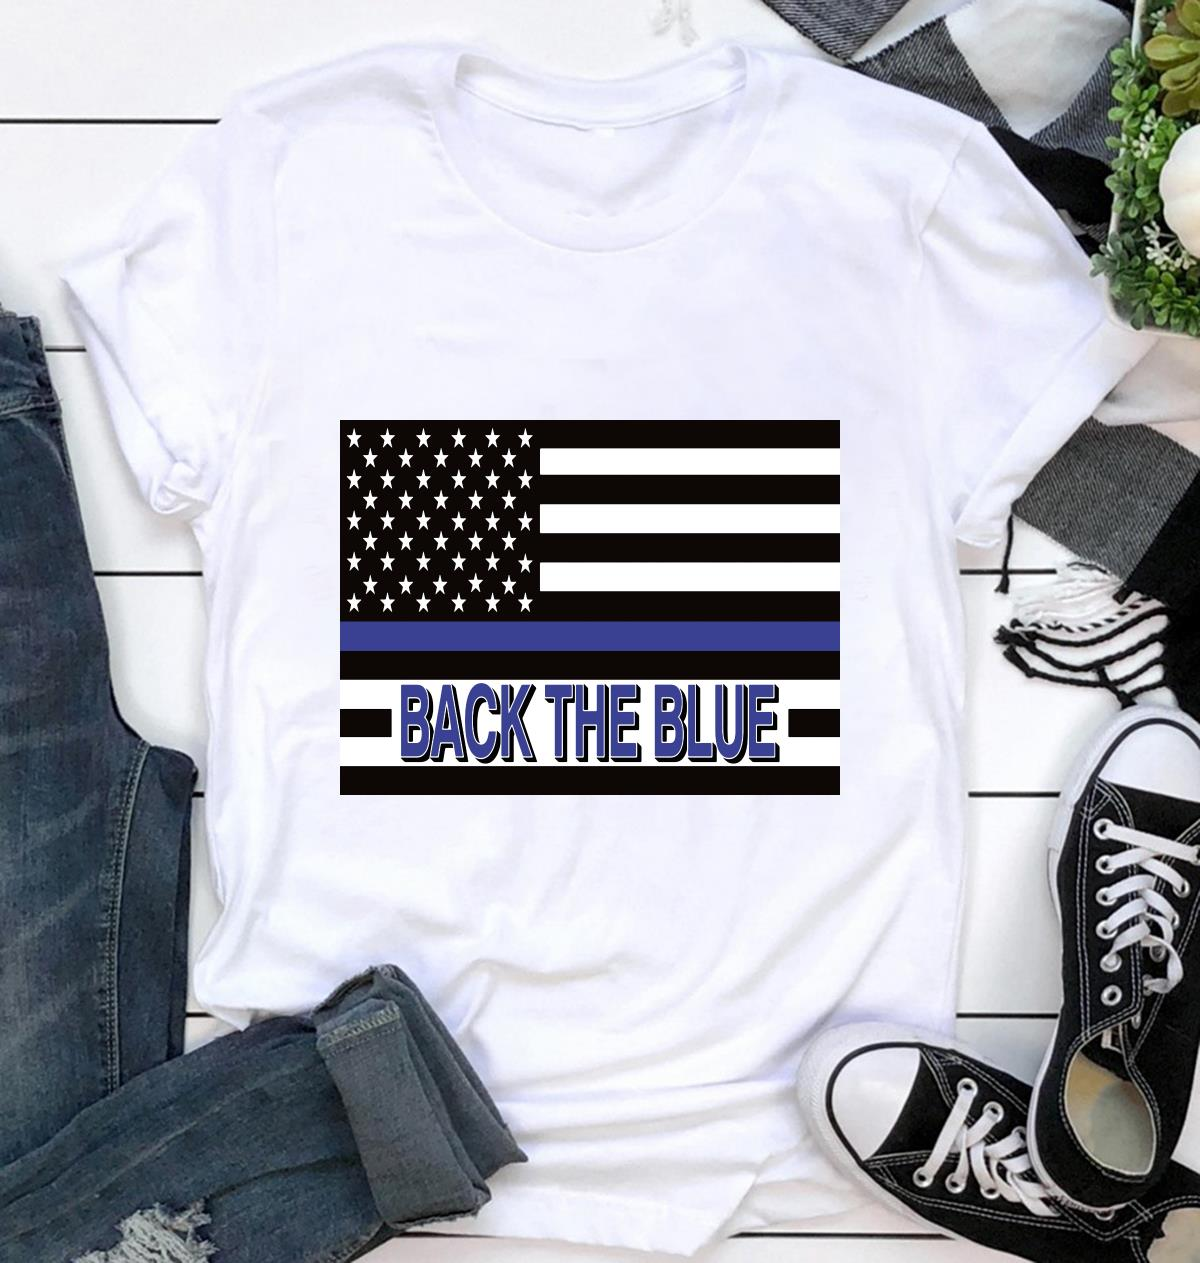 Support Law Enforcement back the blue yard sign ca